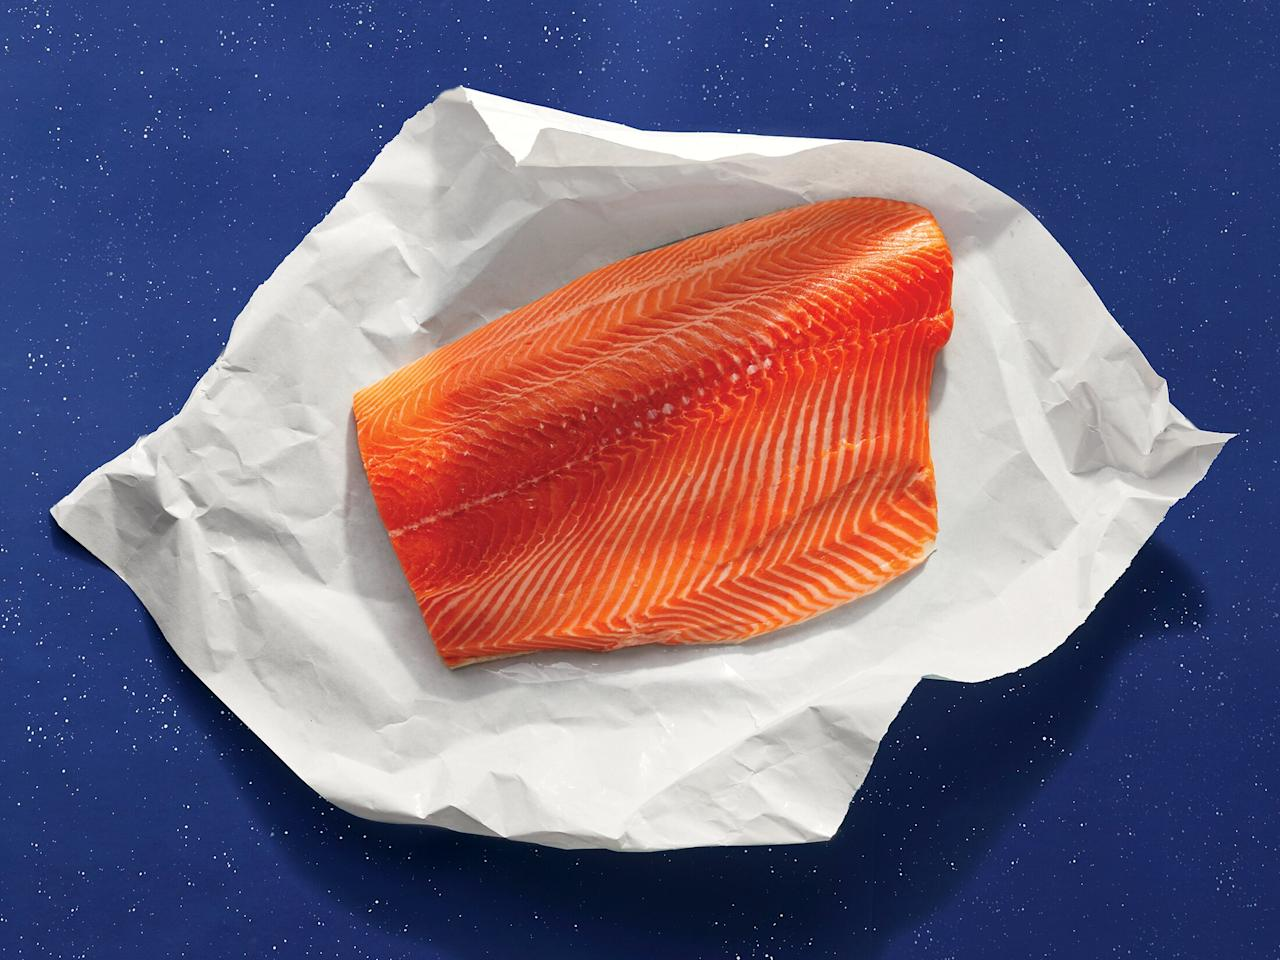 """<p><strong>Buy Center-Cut Fillets for Uniform Thickness</strong></p> <p>Tail pieces are thinner and tend to overcook and may taste fishier due to the more prominent blood line.</p> <p><strong>Know the Differences Between Farm-Raised and Wild-Caught</strong></p> <p>Farm-raised salmon tends to be fattier, which helps it stay juicy. Its flavor is also milder than wild, which veers more savory and complex. In terms of sustainability, check <a href=""""http://www.seafoodwatch.org/"""" target=""""_blank"""">seafoodwatch.org</a>, the Monterey Bay Aquarium Seafood Watch site, for up-to-date recommendations on all the seafood featured here.</p>"""